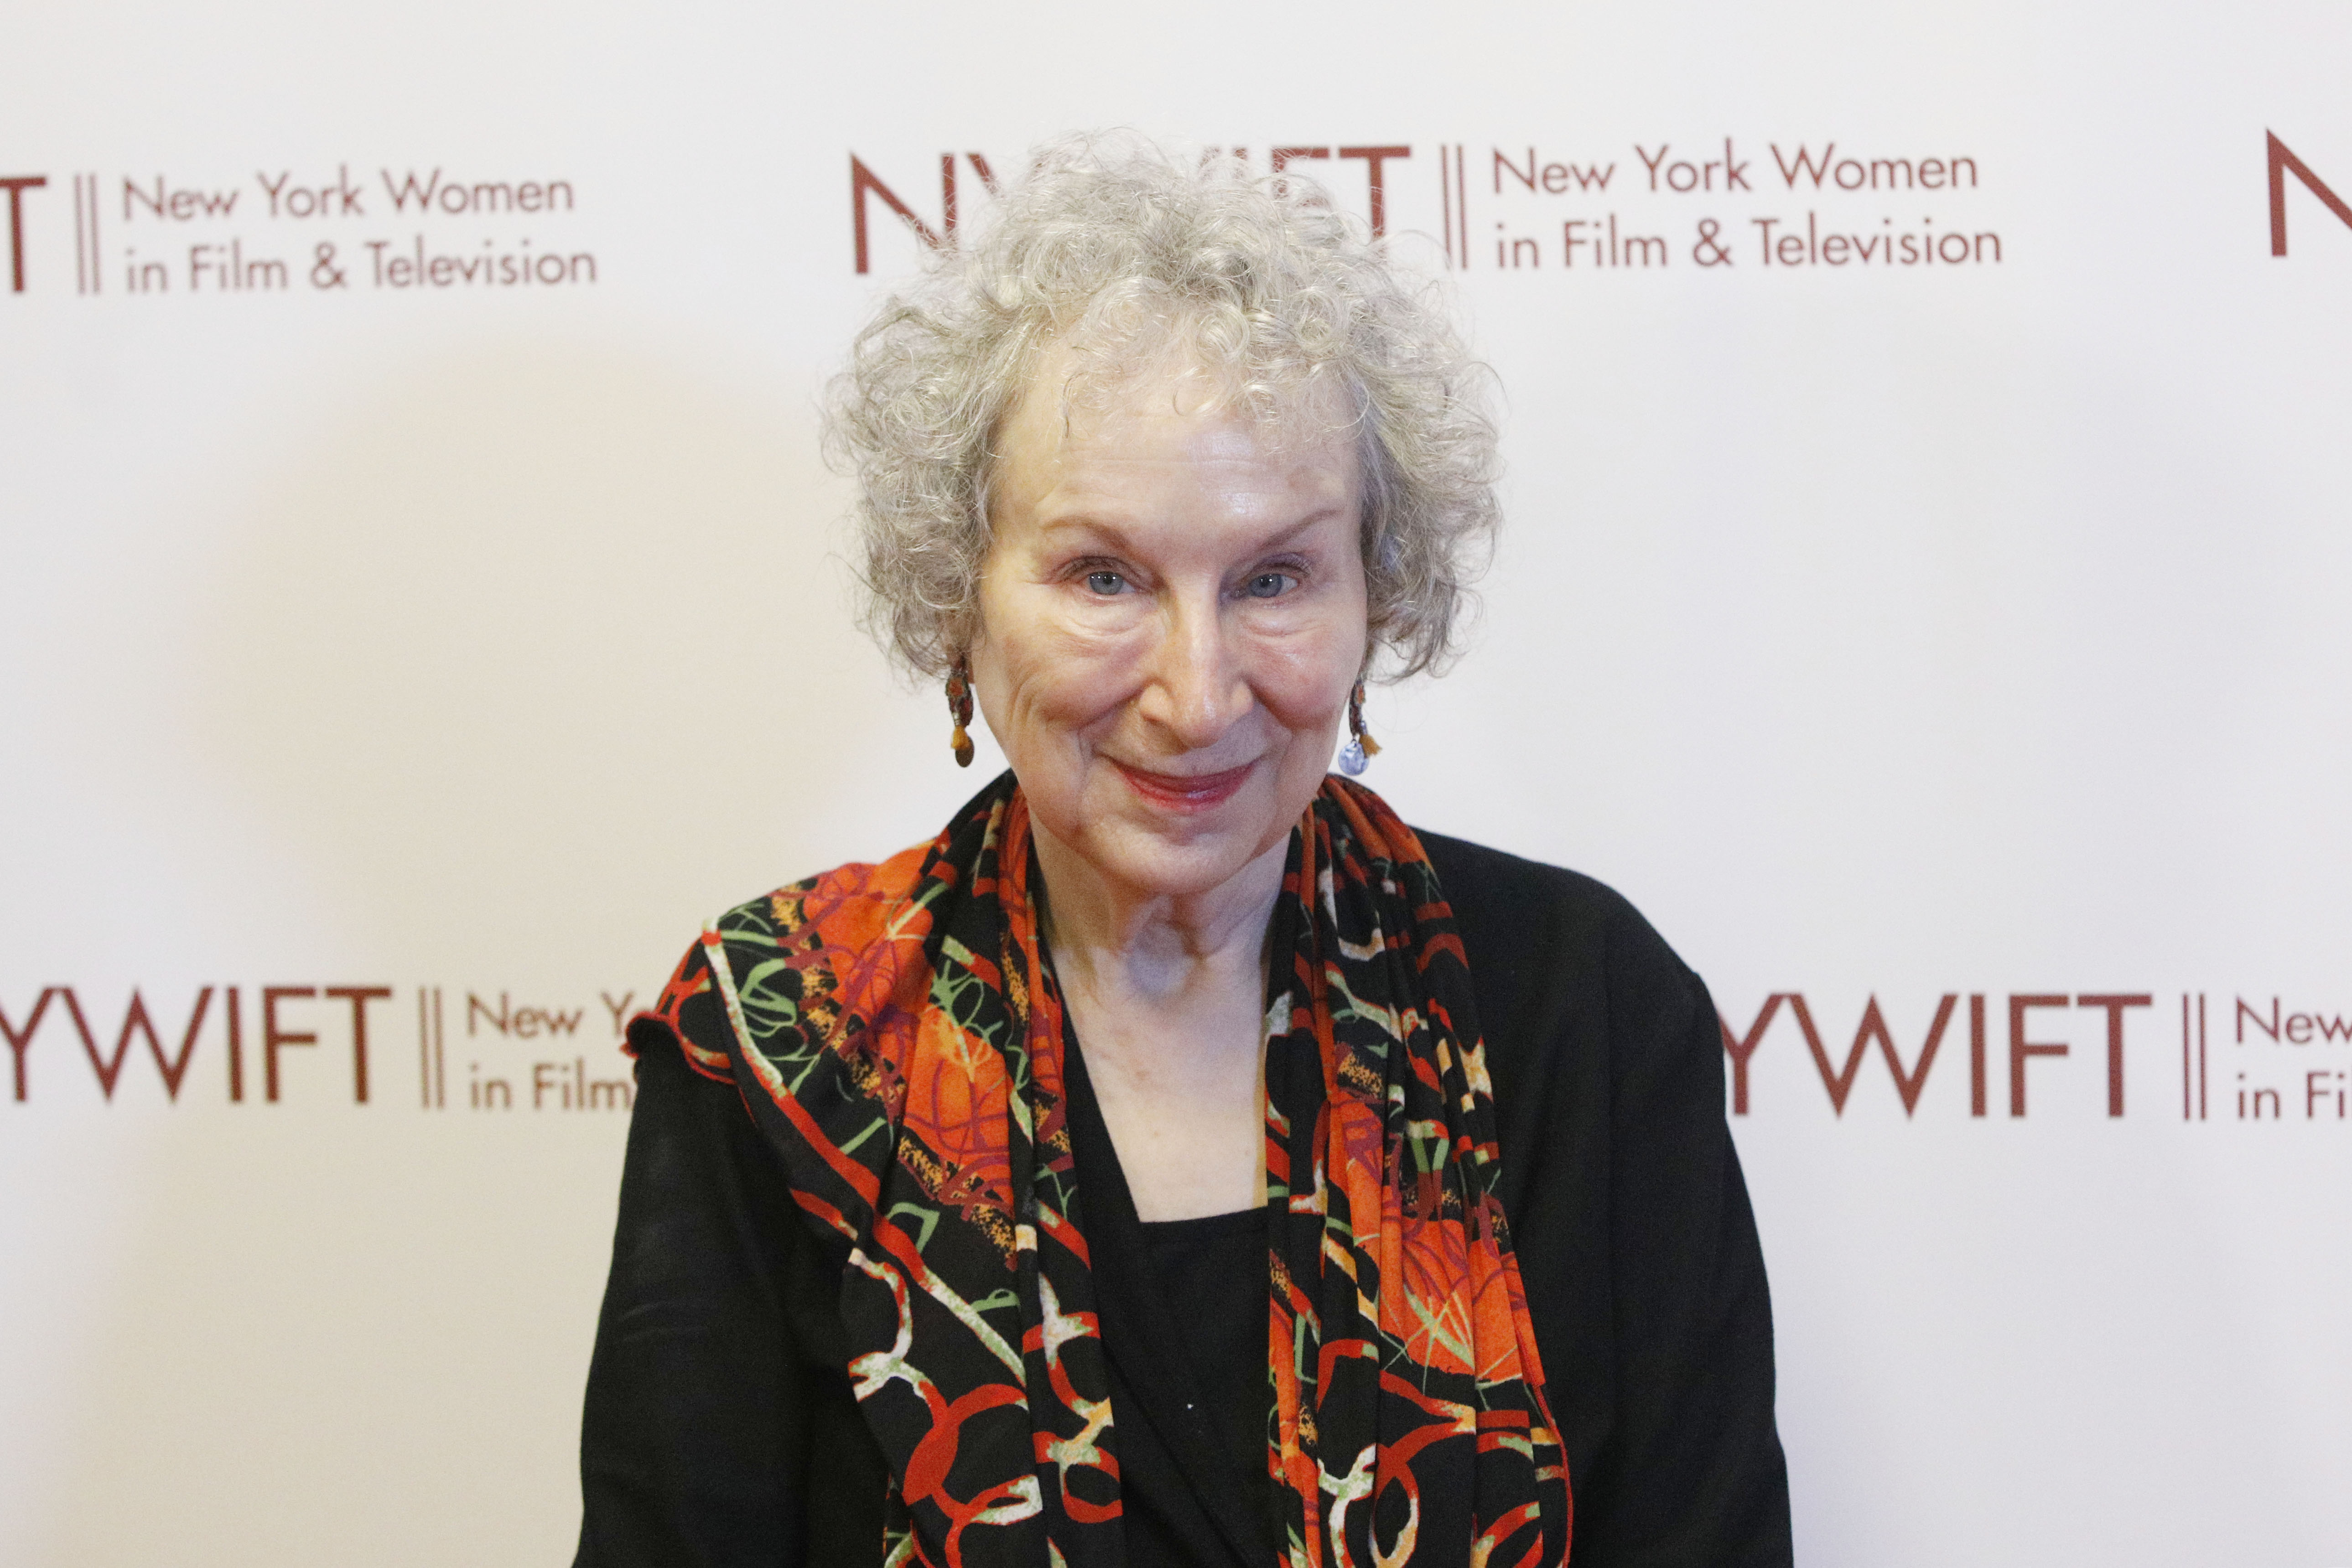 Margaret Atwood Trilogy To Be Adapted Into Ballet